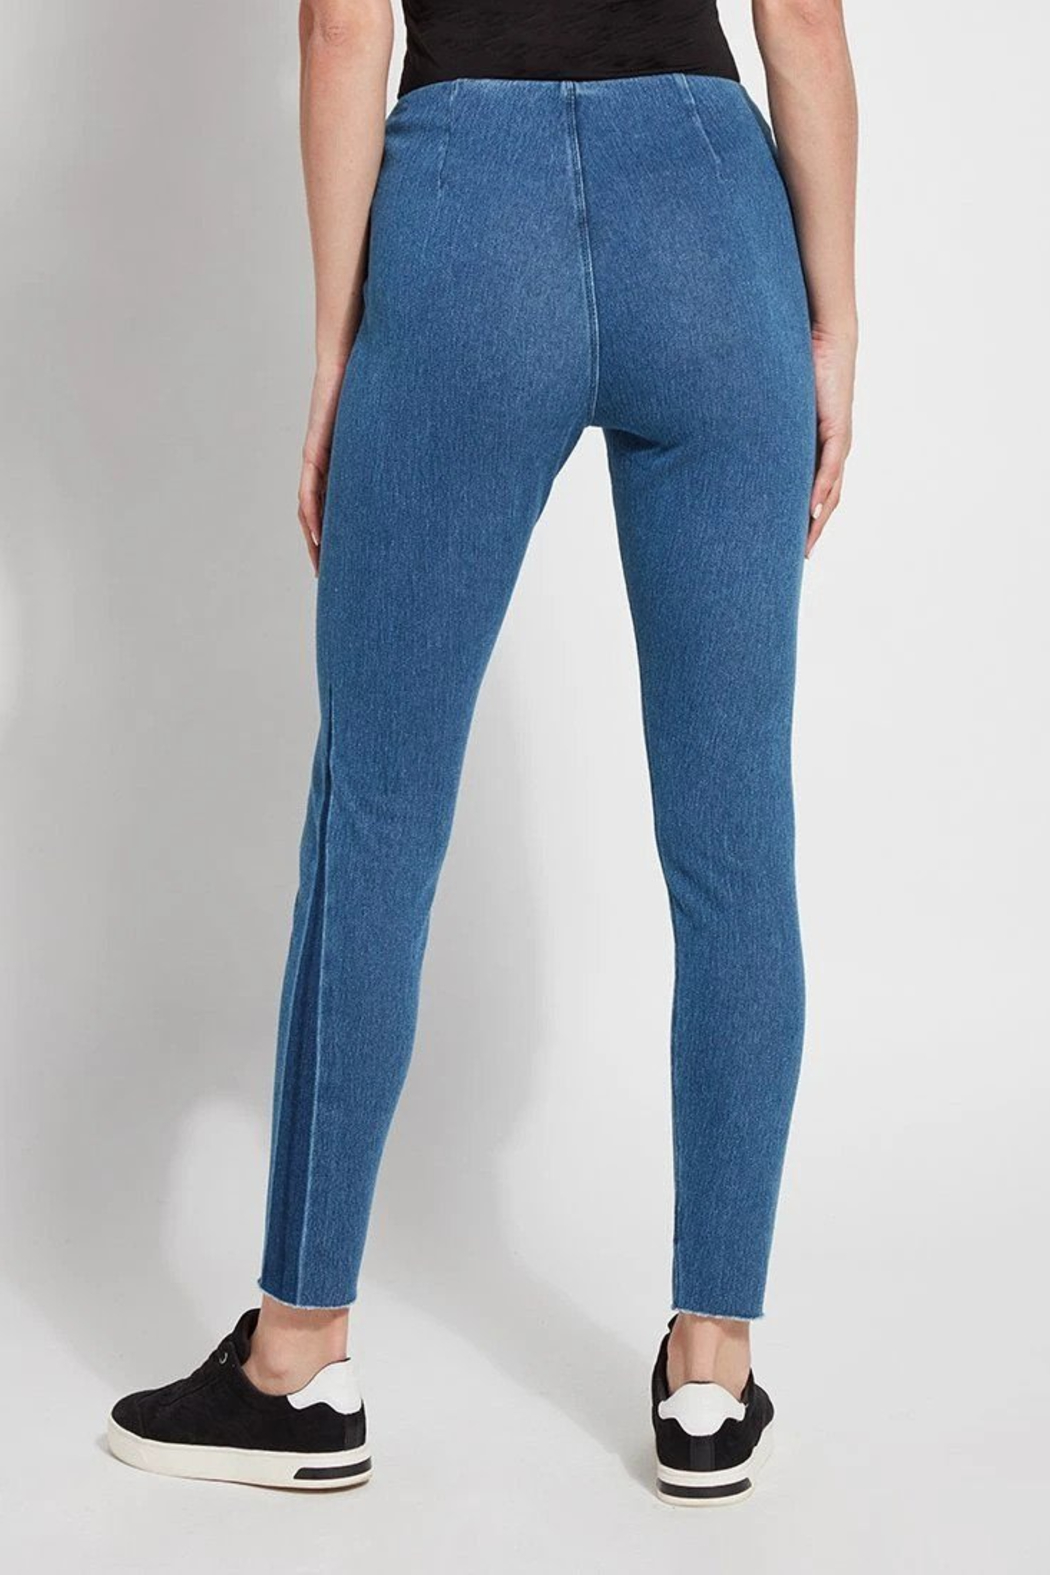 Lysse Annelise Mixed Wash Denim - Side Cropped Image